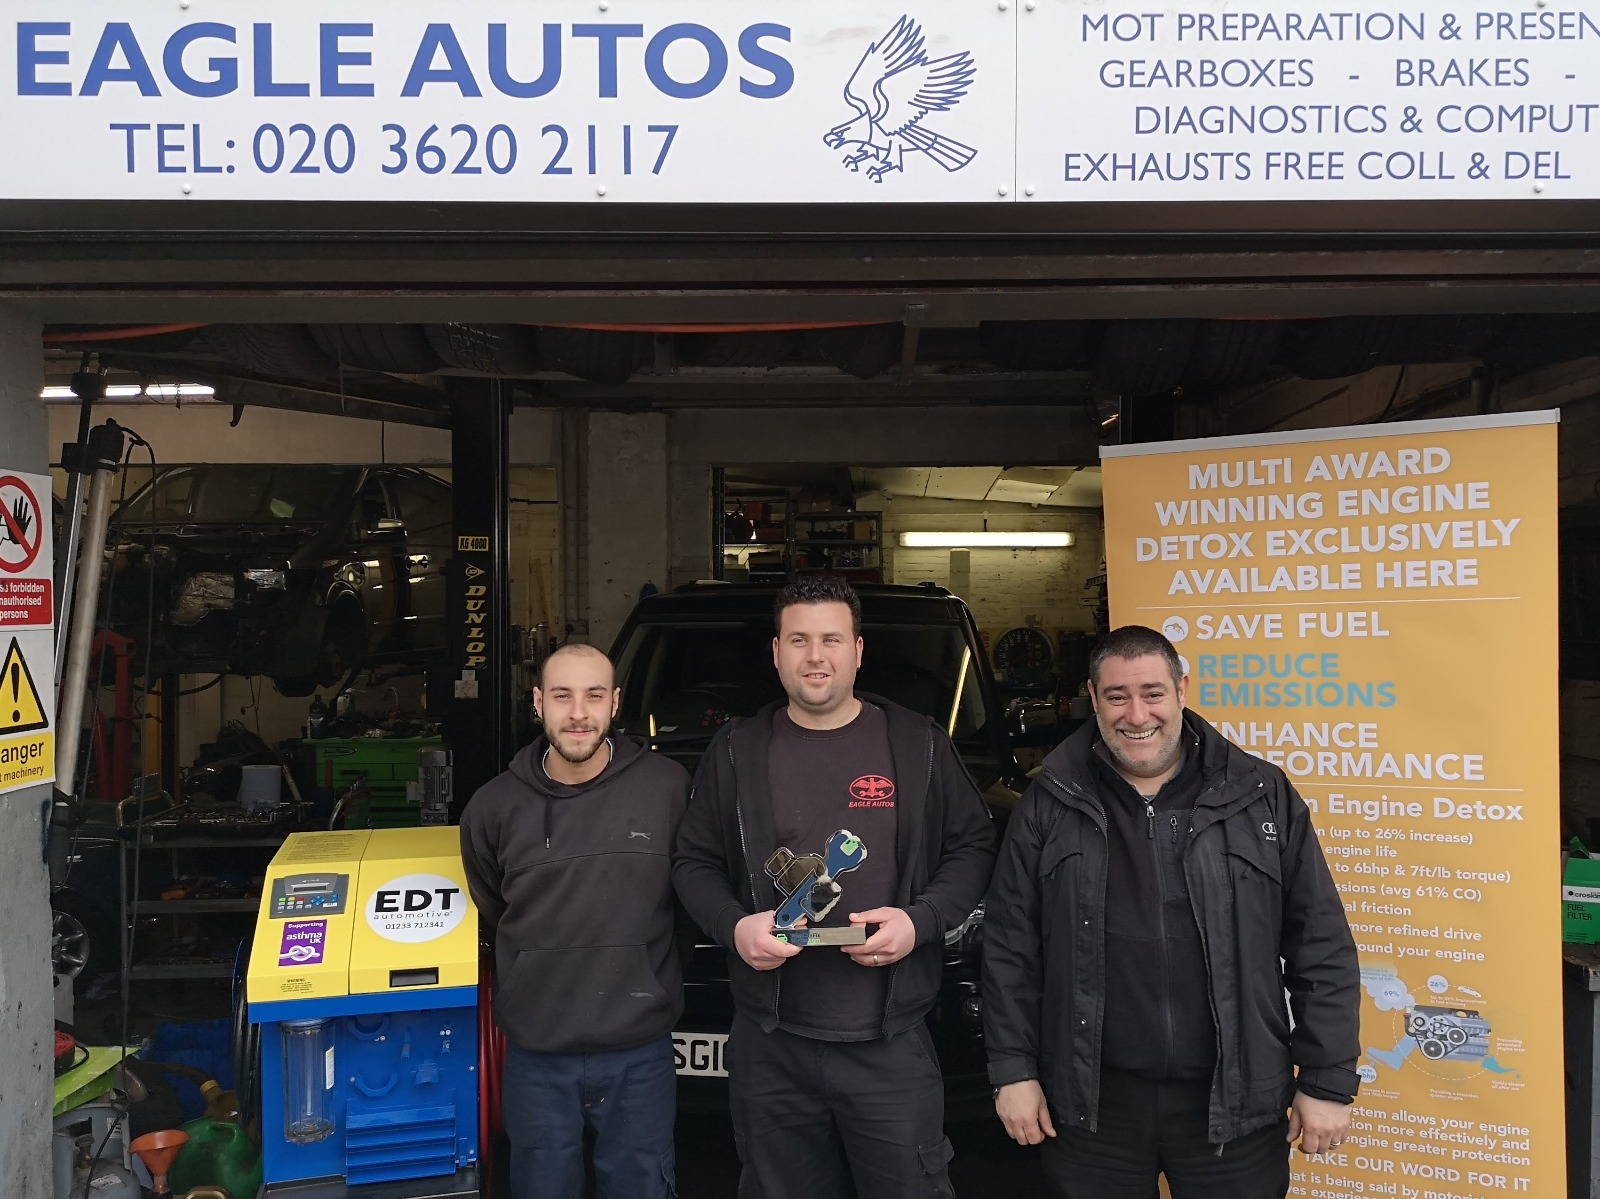 The team at Eagle Autos